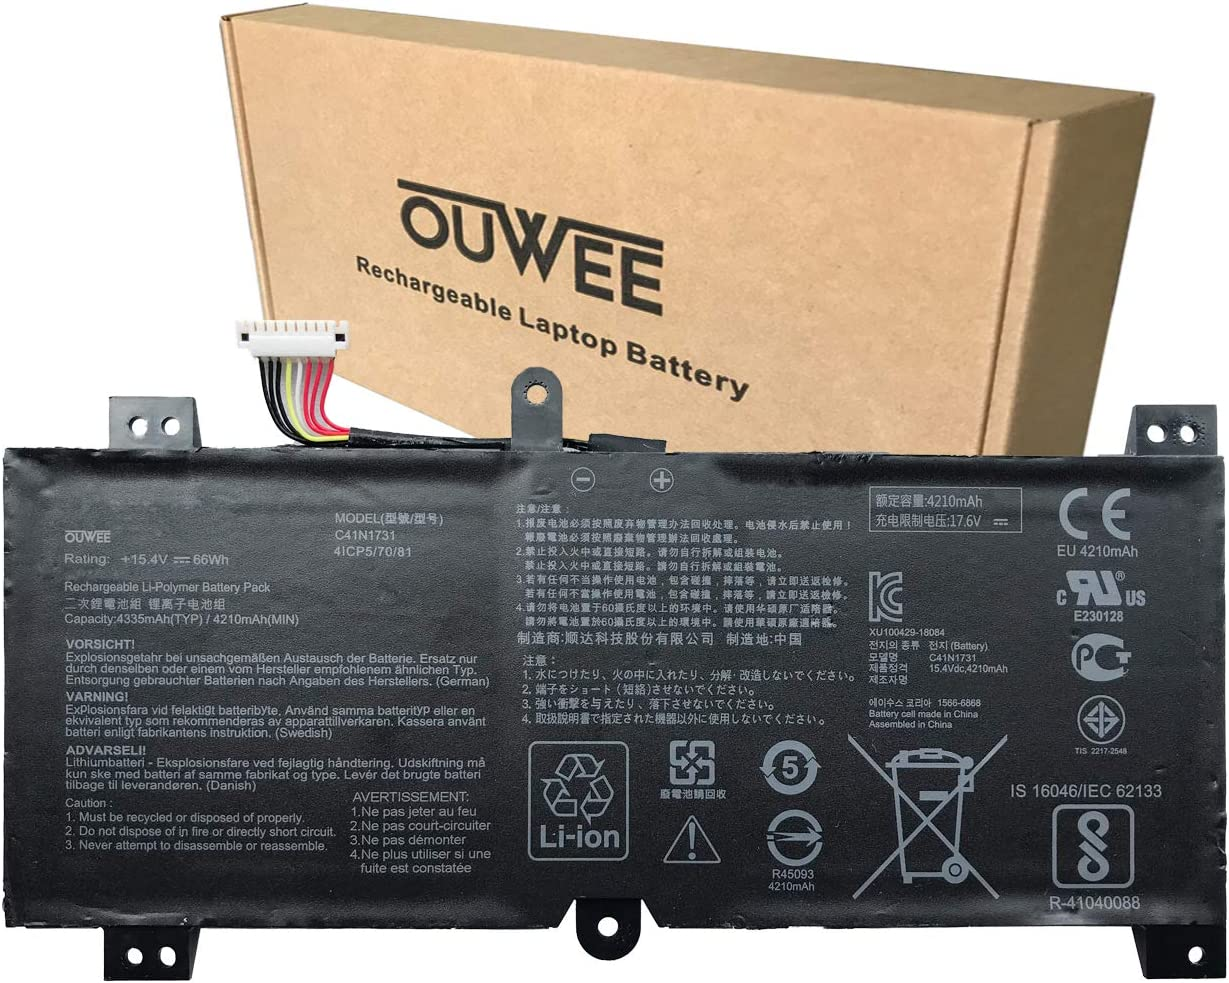 OUWEE C41N1731 Laptop Battery Compatible ROG Her Free shipping anywhere in the nation Strix with Award-winning store ASUS